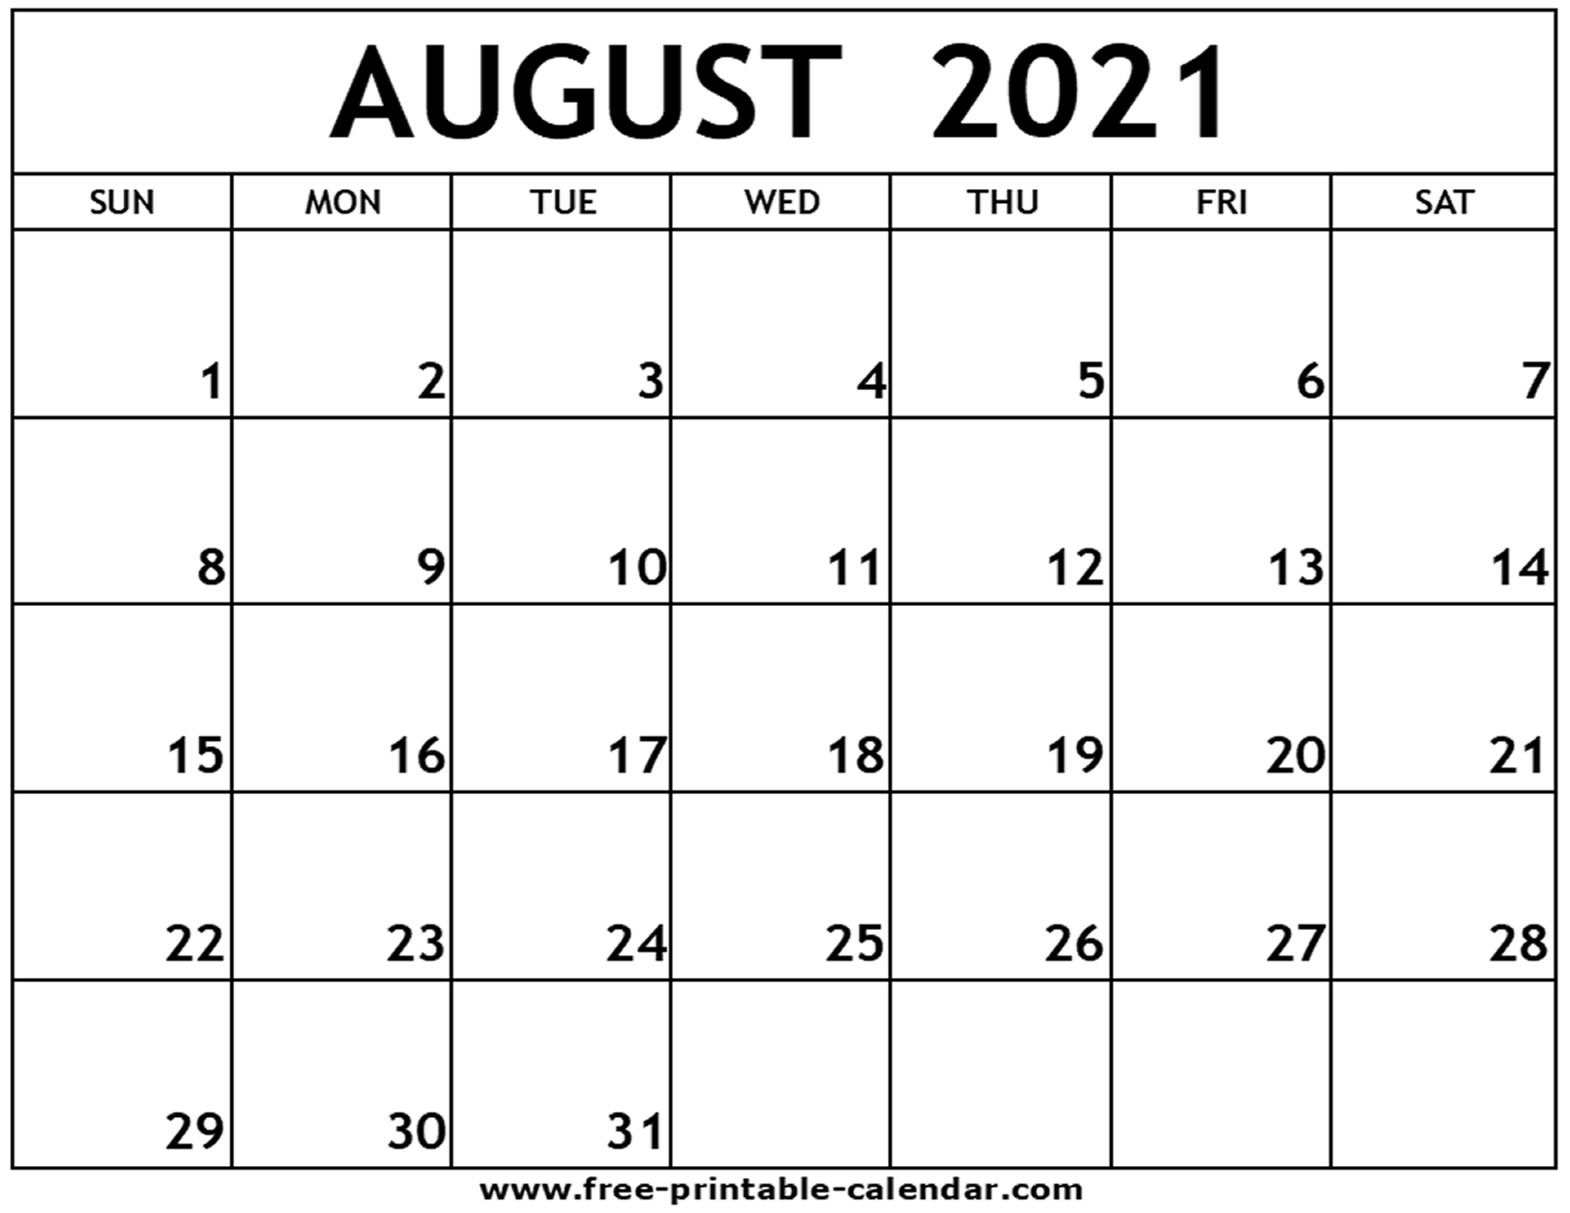 Pick Fill In Blank August 2021 Calendar